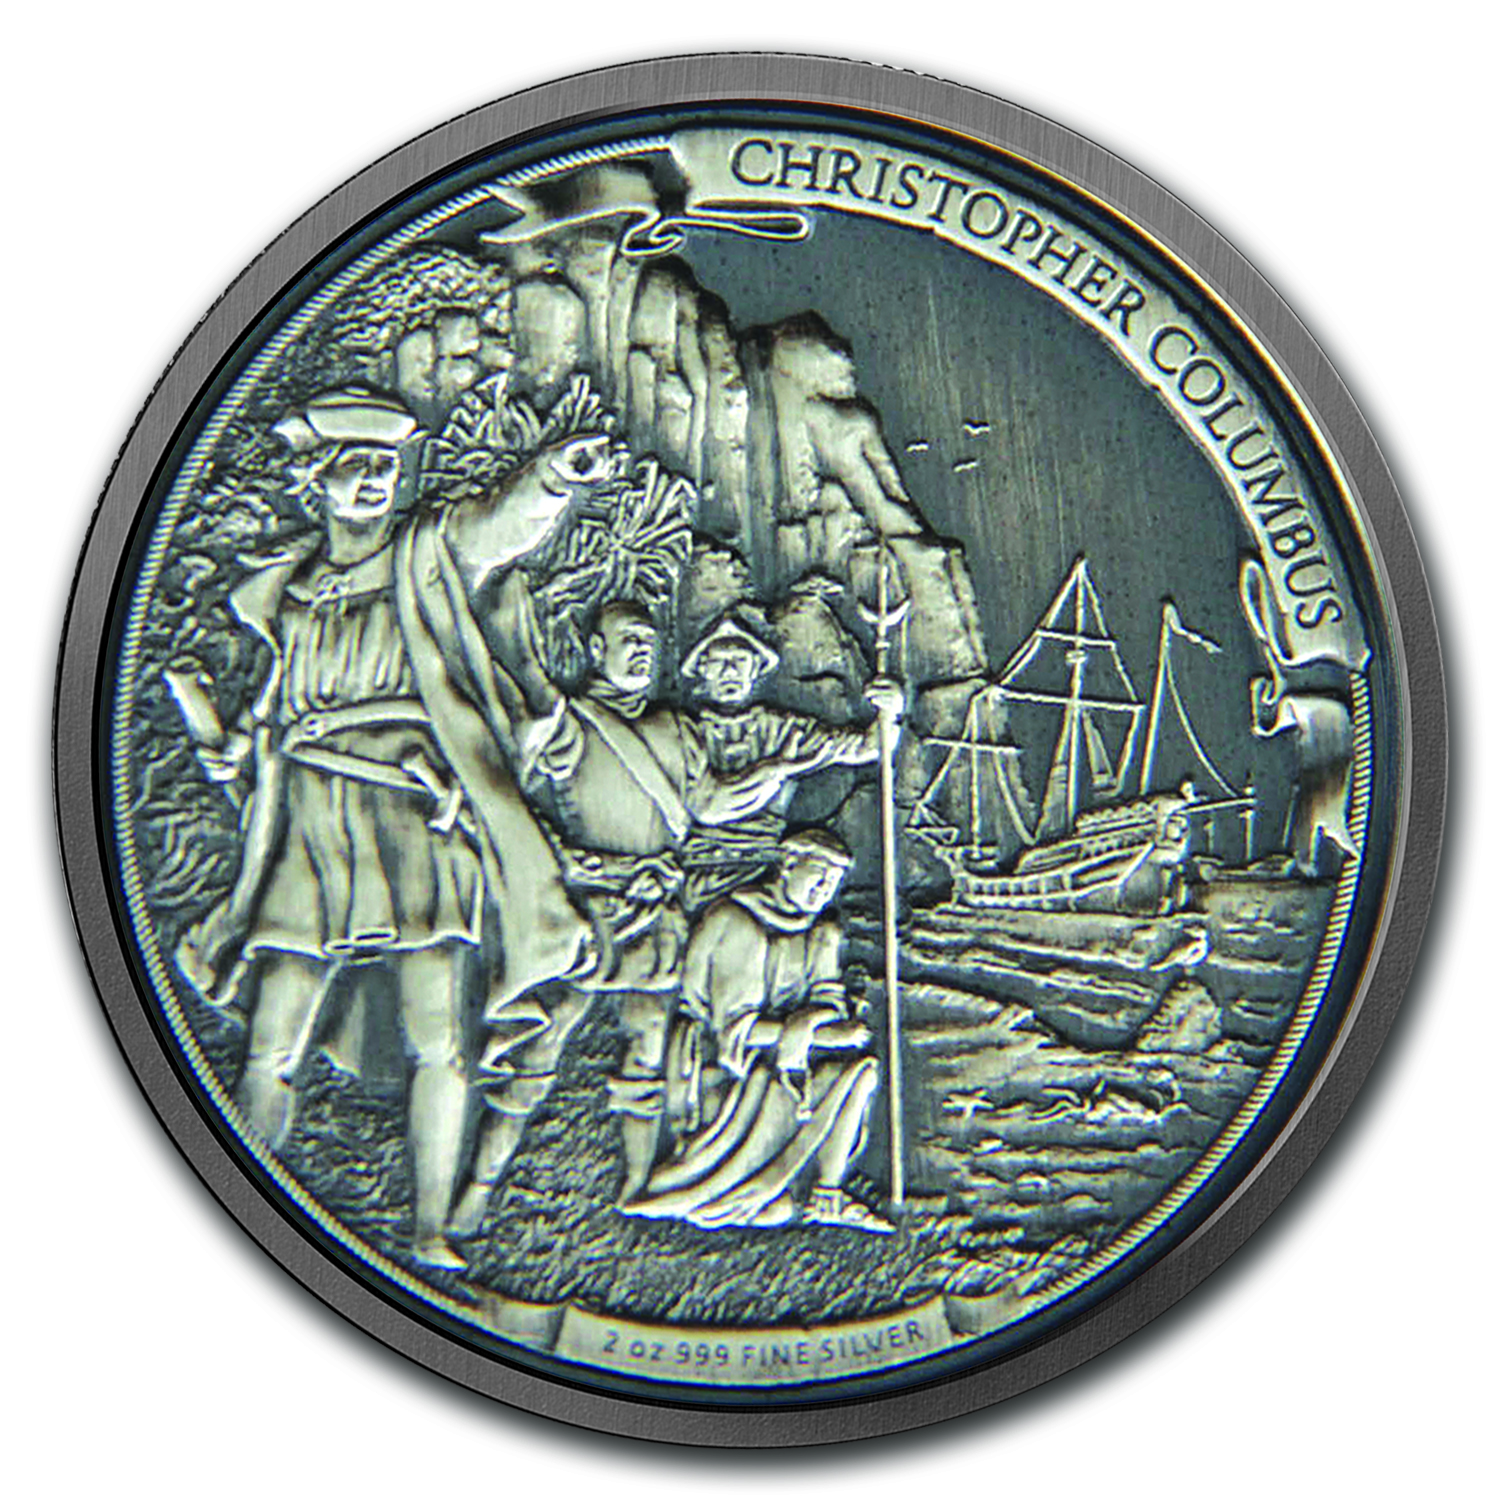 2015 Niue 2 oz Silver $5 Christopher Columbus HR (w/Box & COA)